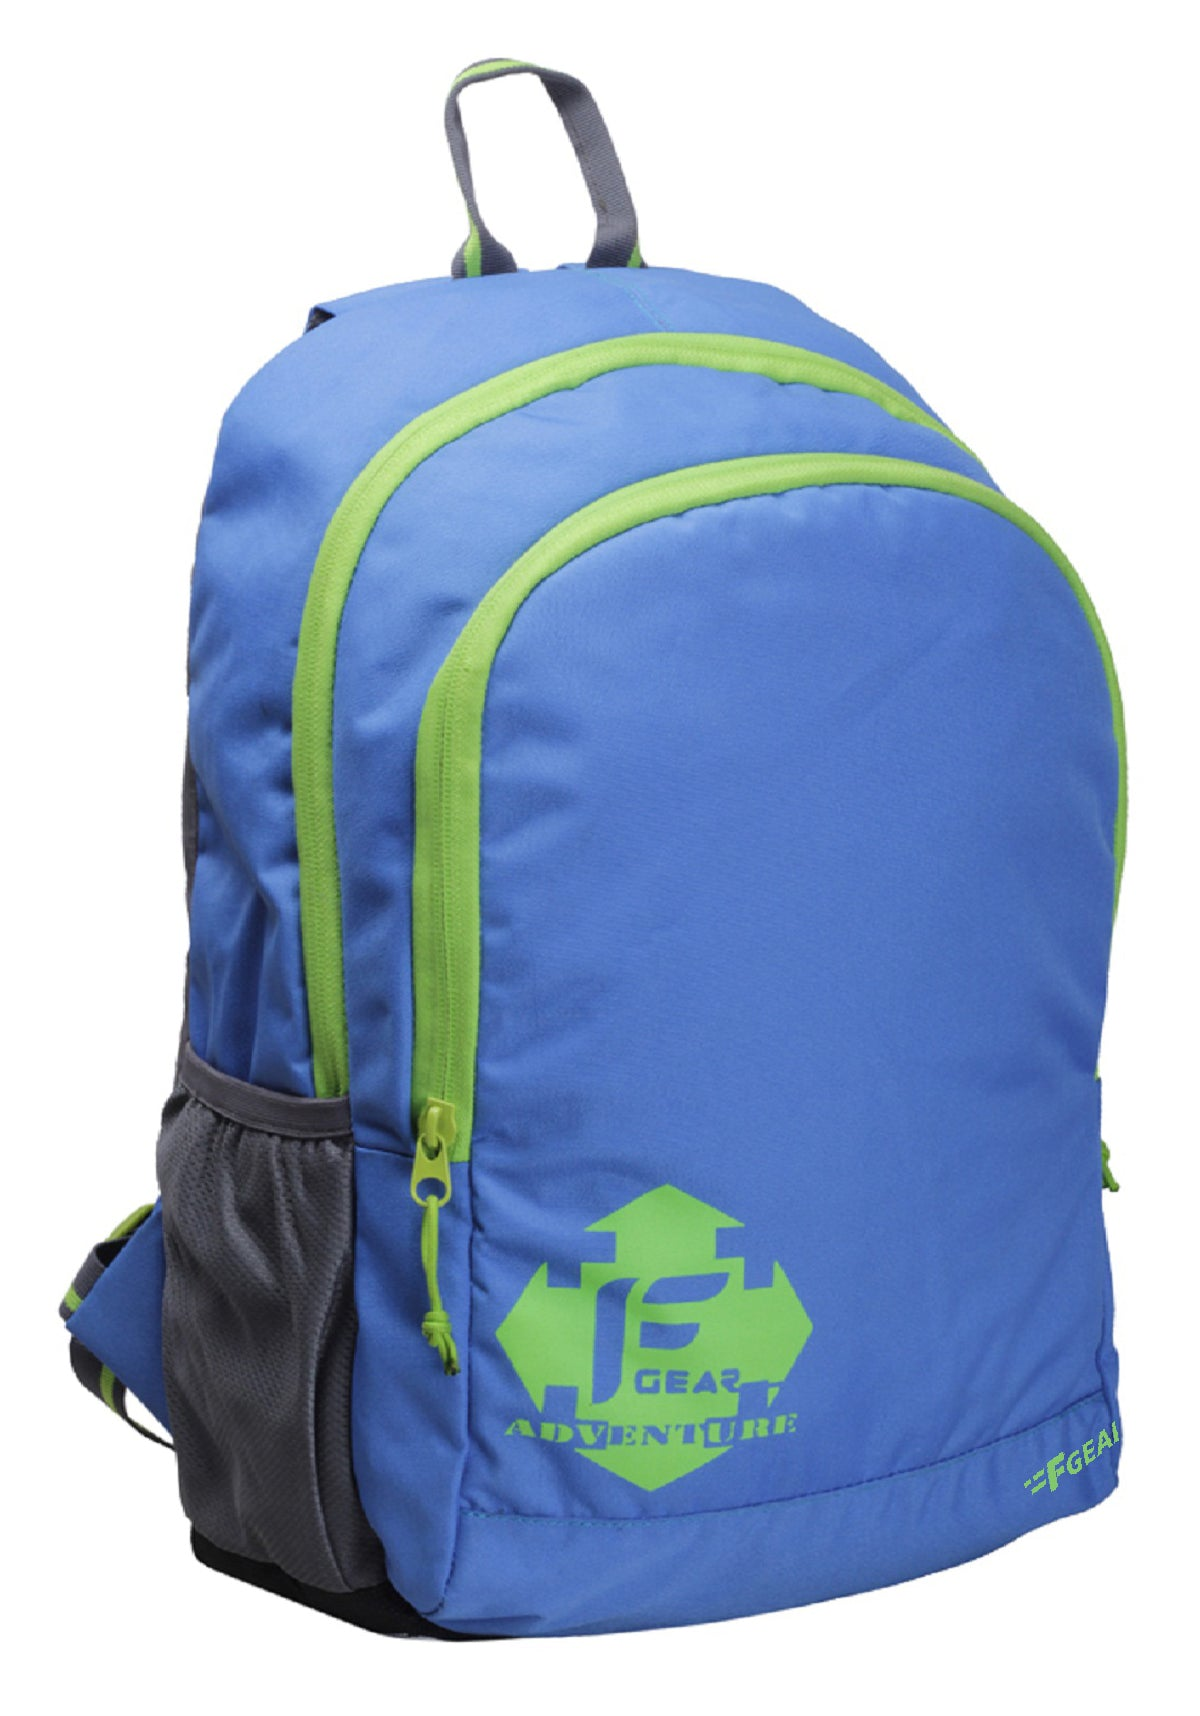 F Gear Castle 24 Ltrs Royal Blue Green Casual Backpack